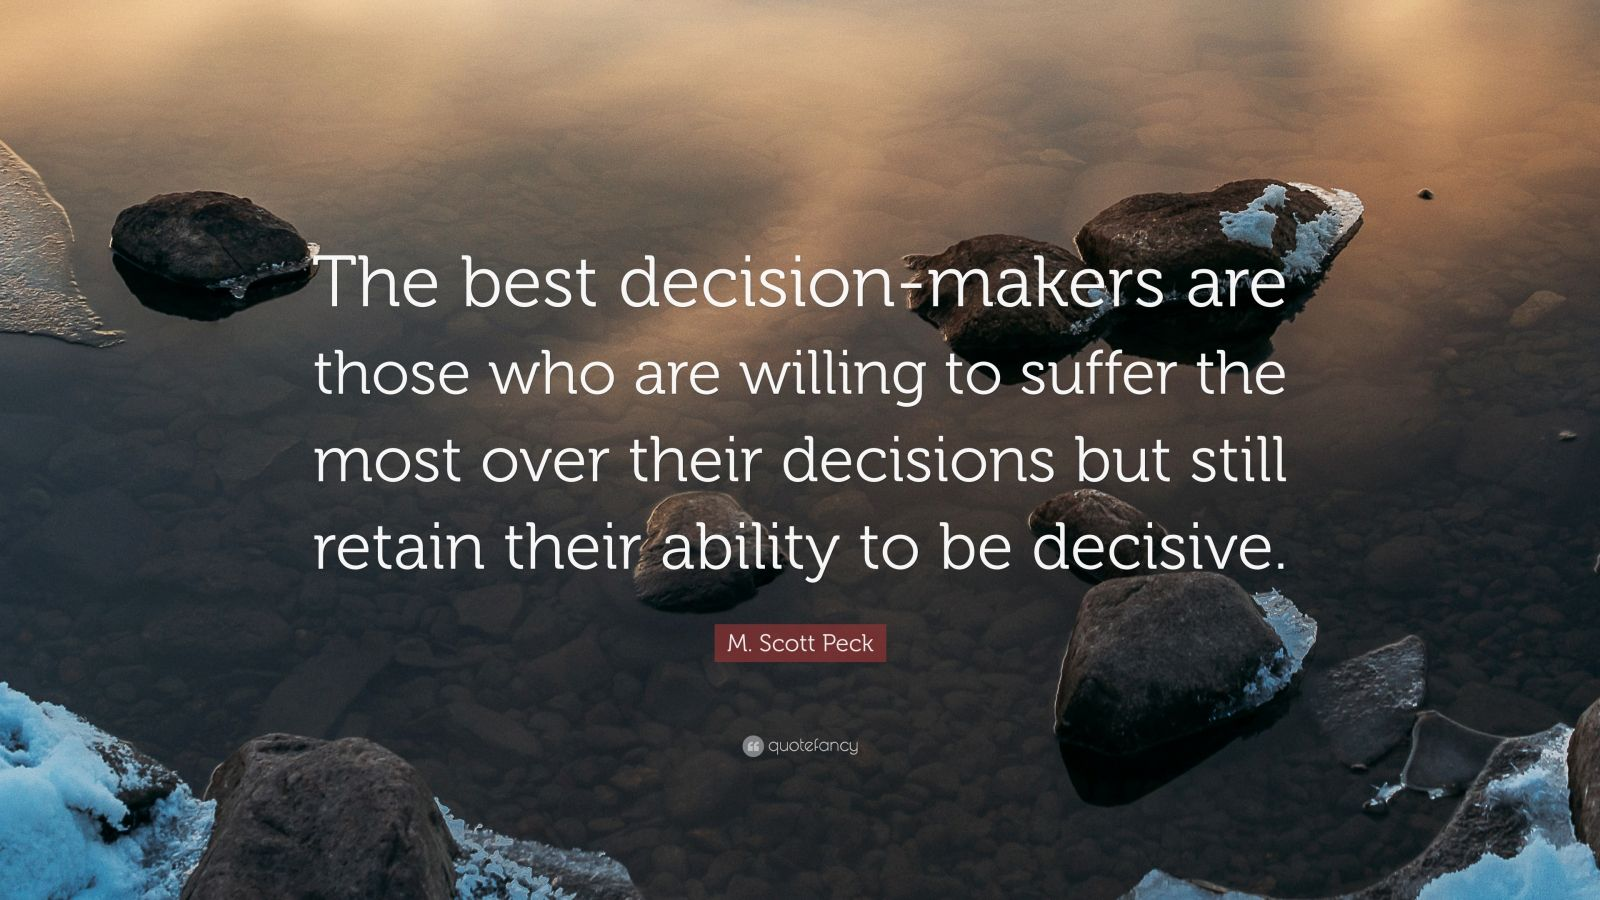 range of decision to be taken Similarly, the decision taken may not be rational if the decision-maker fails to follow all necessary steps required for scientific decision-making a hasty decision or decision taken without full use of all mental faculties may not be fully rational.